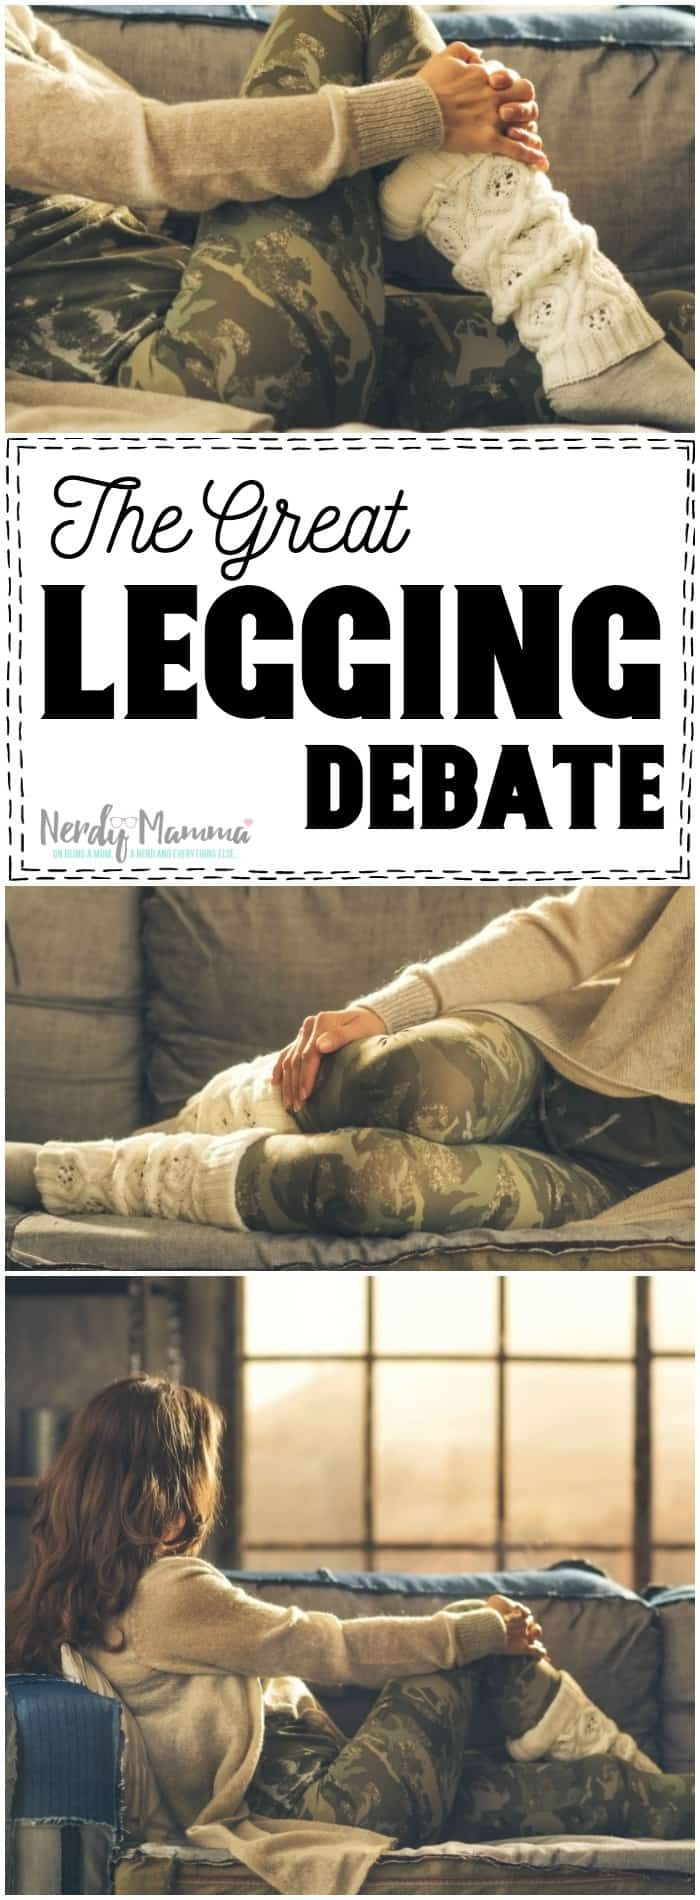 Oh, this mom. She's so funny. Going over the great legging debate Yeah, she nails it. LOL!